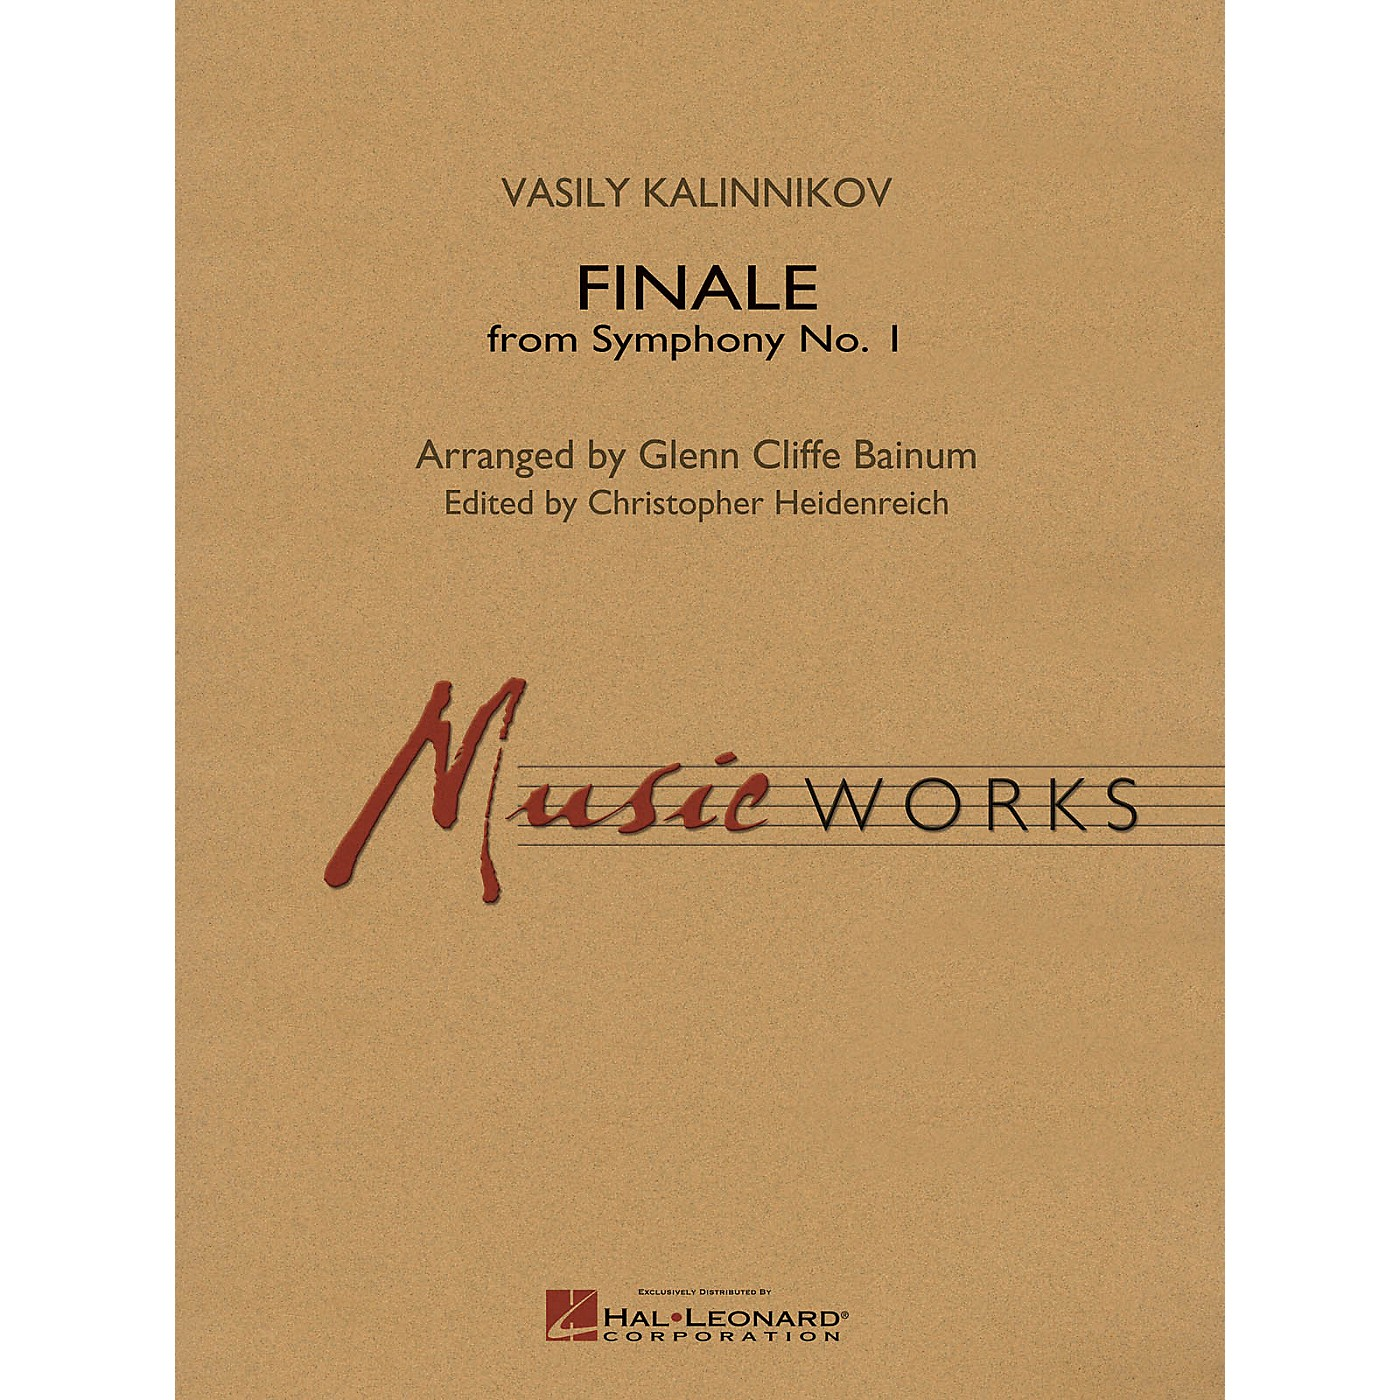 Hal Leonard Finale from Symphony No. 1 (Revised Edition) Concert Band Level 5 Arranged by Glenn Cliffe Bainum thumbnail